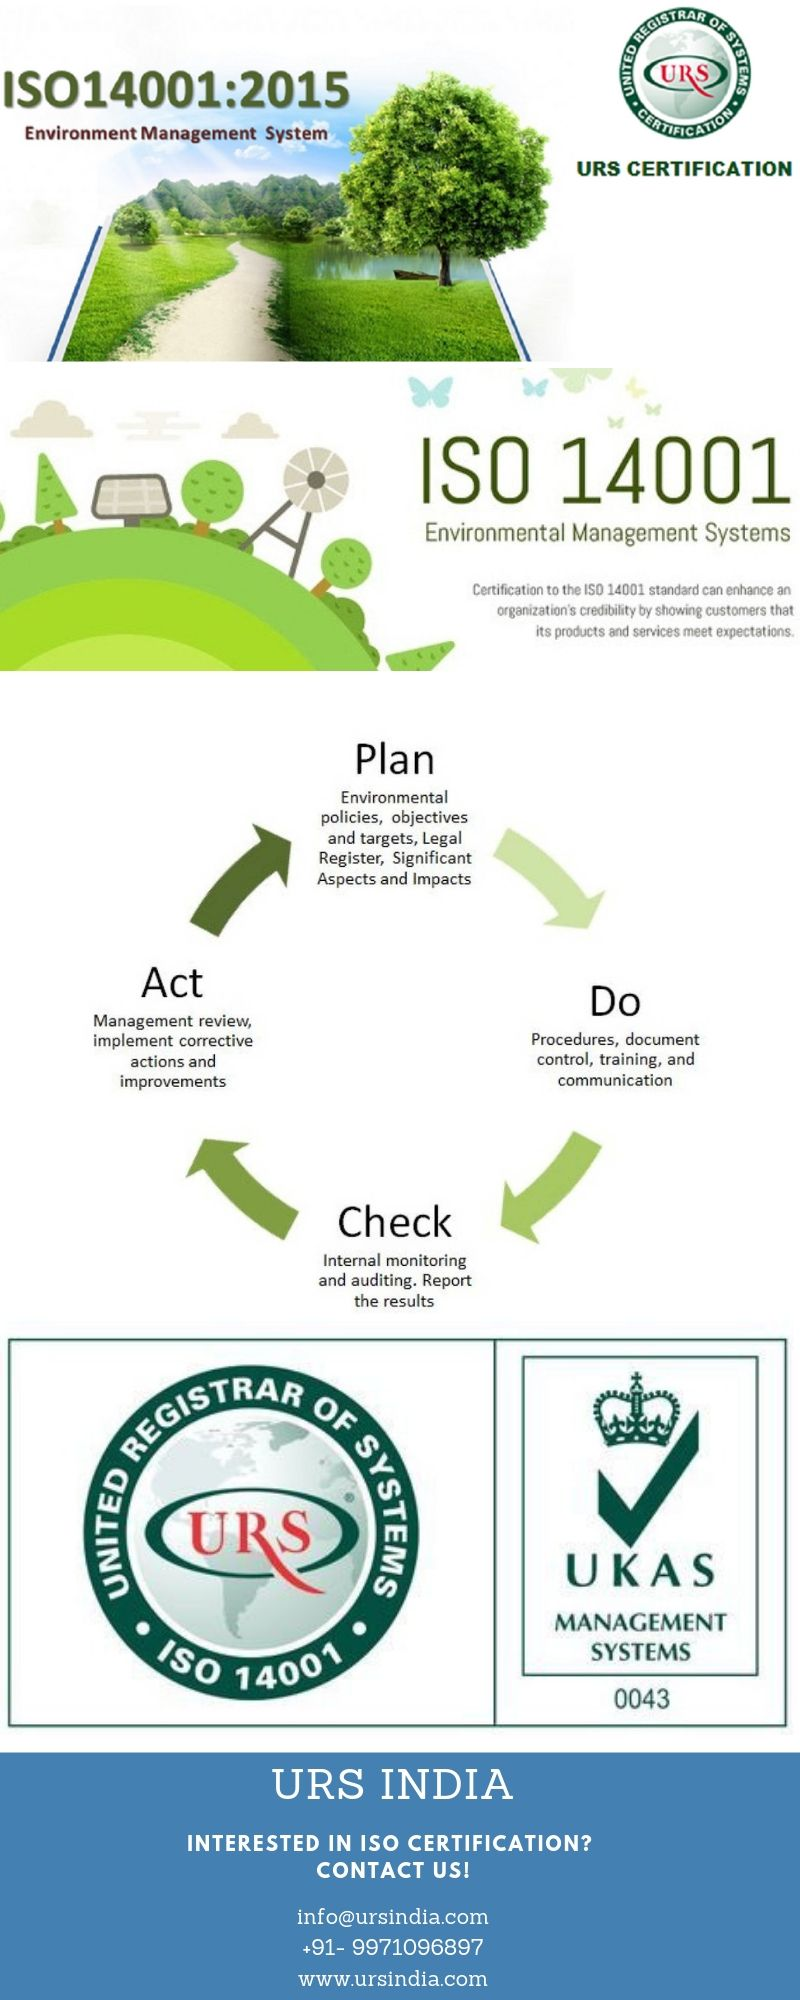 If you are considering the ISO 14001 environmental